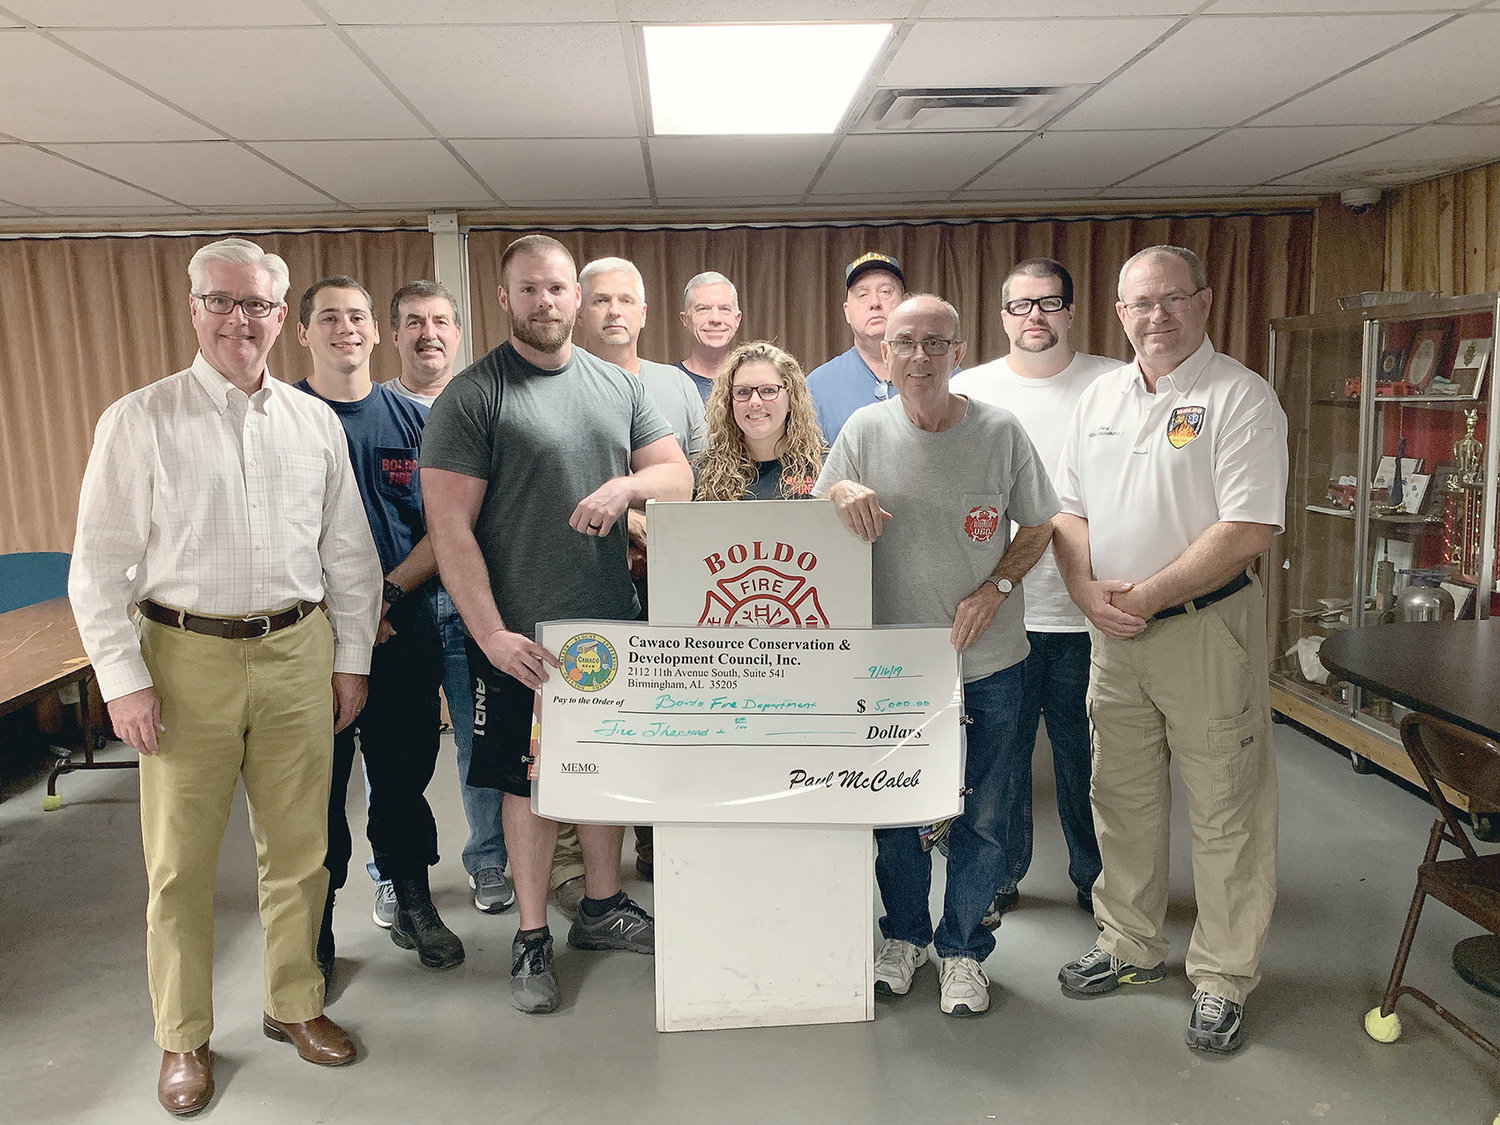 Senate Majority Leader Greg Reed, R-Jasper, presented a check Monday to Boldo Fire for $5,000 for a new generator. The grant came from the Cawaco Resource, Conservation & Development Council. Shown are, from left, Reed, Landon Lilley, Ronnie Gravlee, Jason Hardin, Mike Knowles, Richard Fikes, Amie Gravlee, Steve Dutton, Sam Carroll, Justin Knowles, and Boldo Fire Chief Greg Chamness.